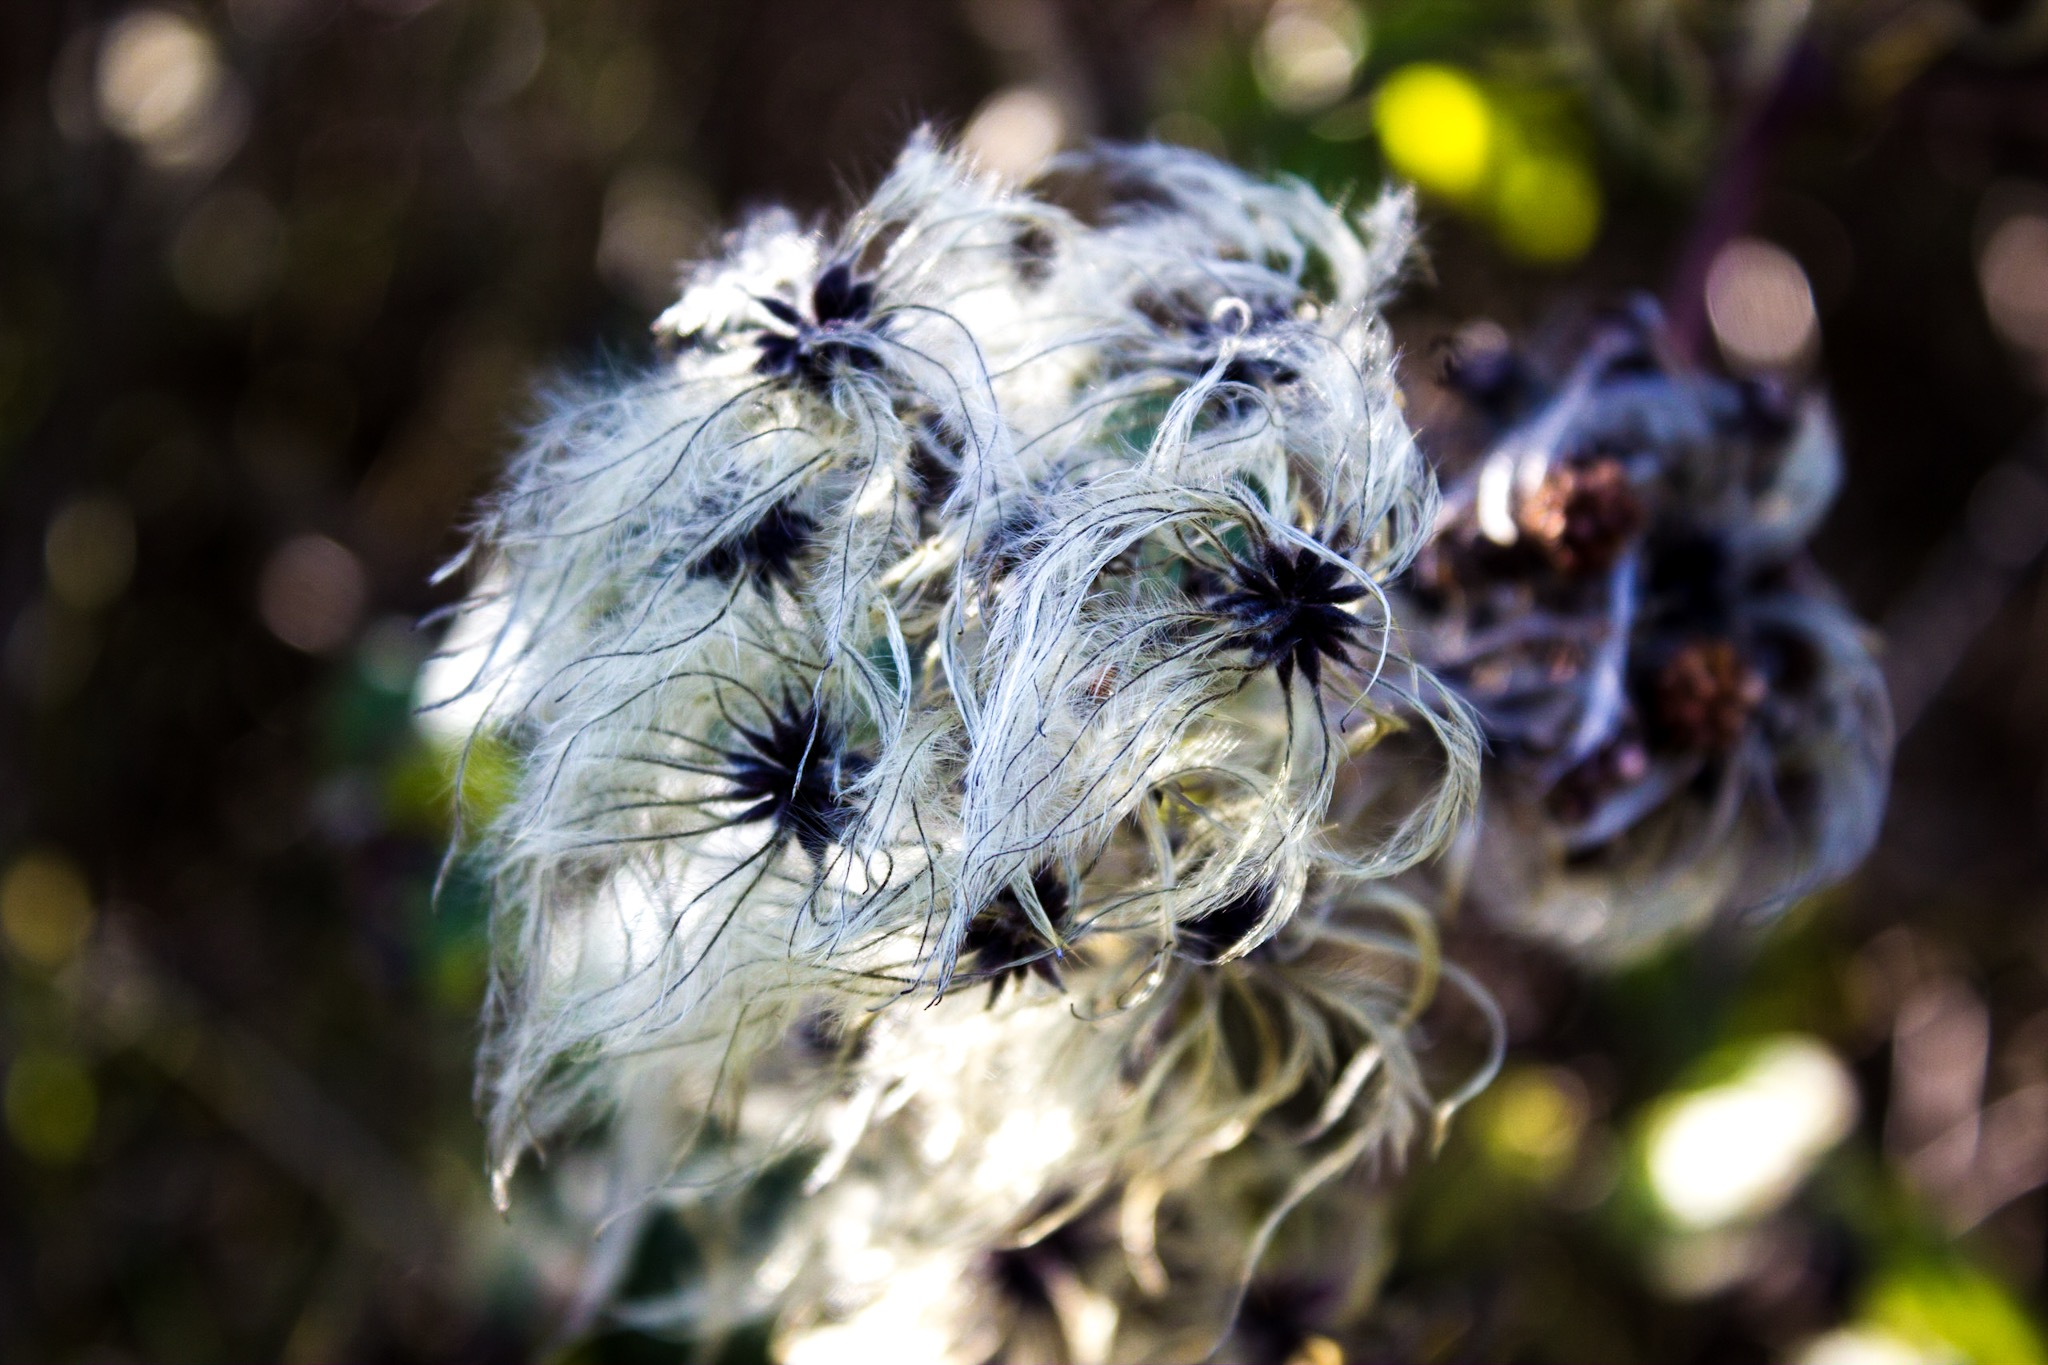 Seed heads in the autumn sunshine...